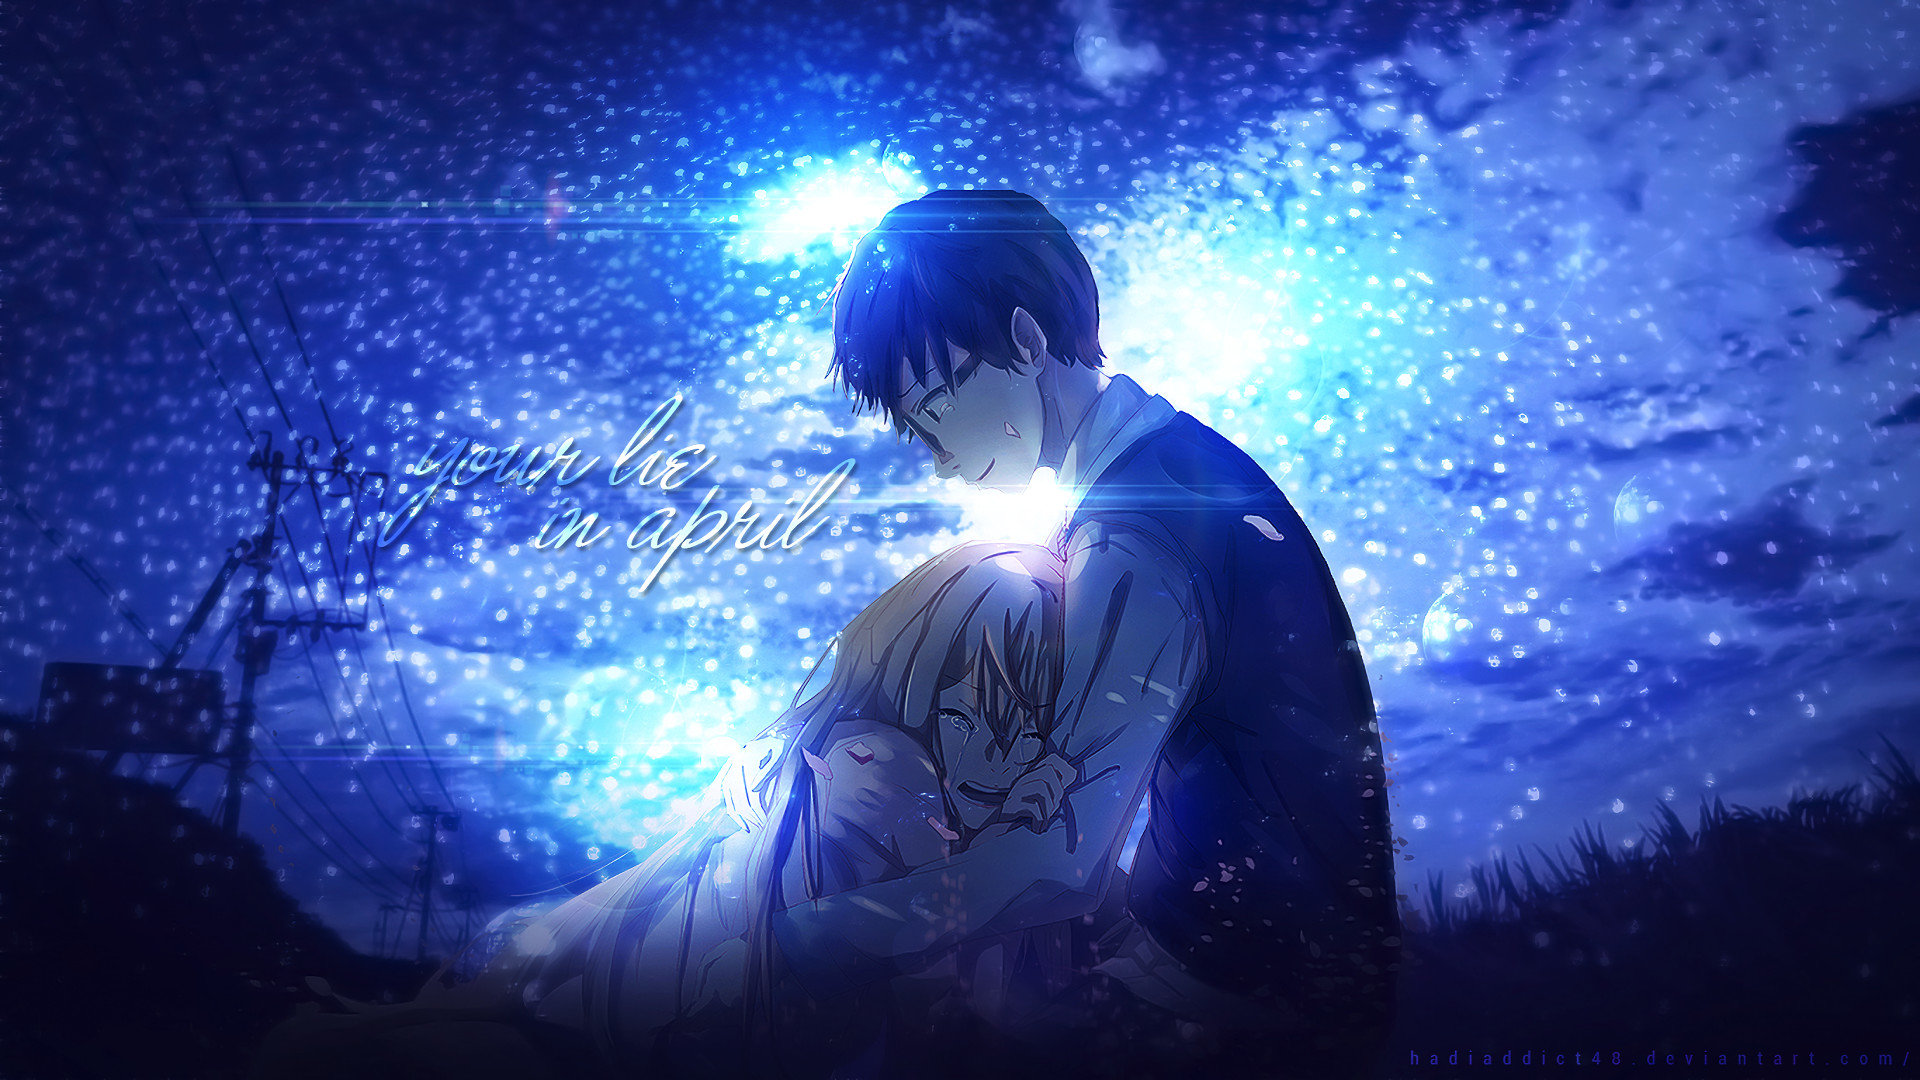 Your Lie In April Wallpapers 1920x1080 Full HD (1080p